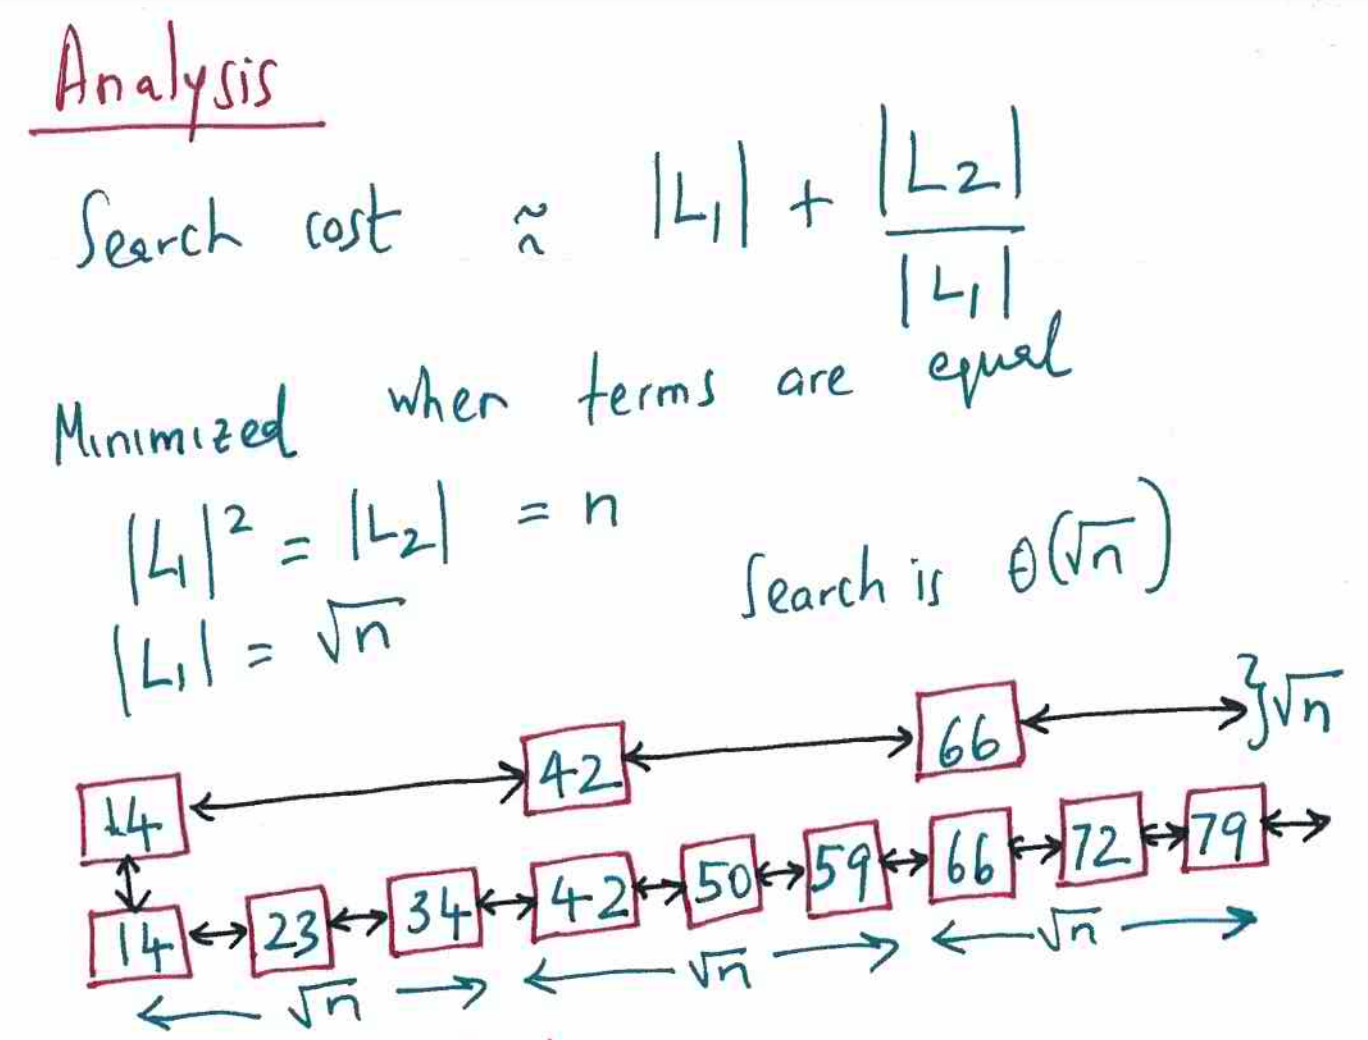 Analysis of two linked lists